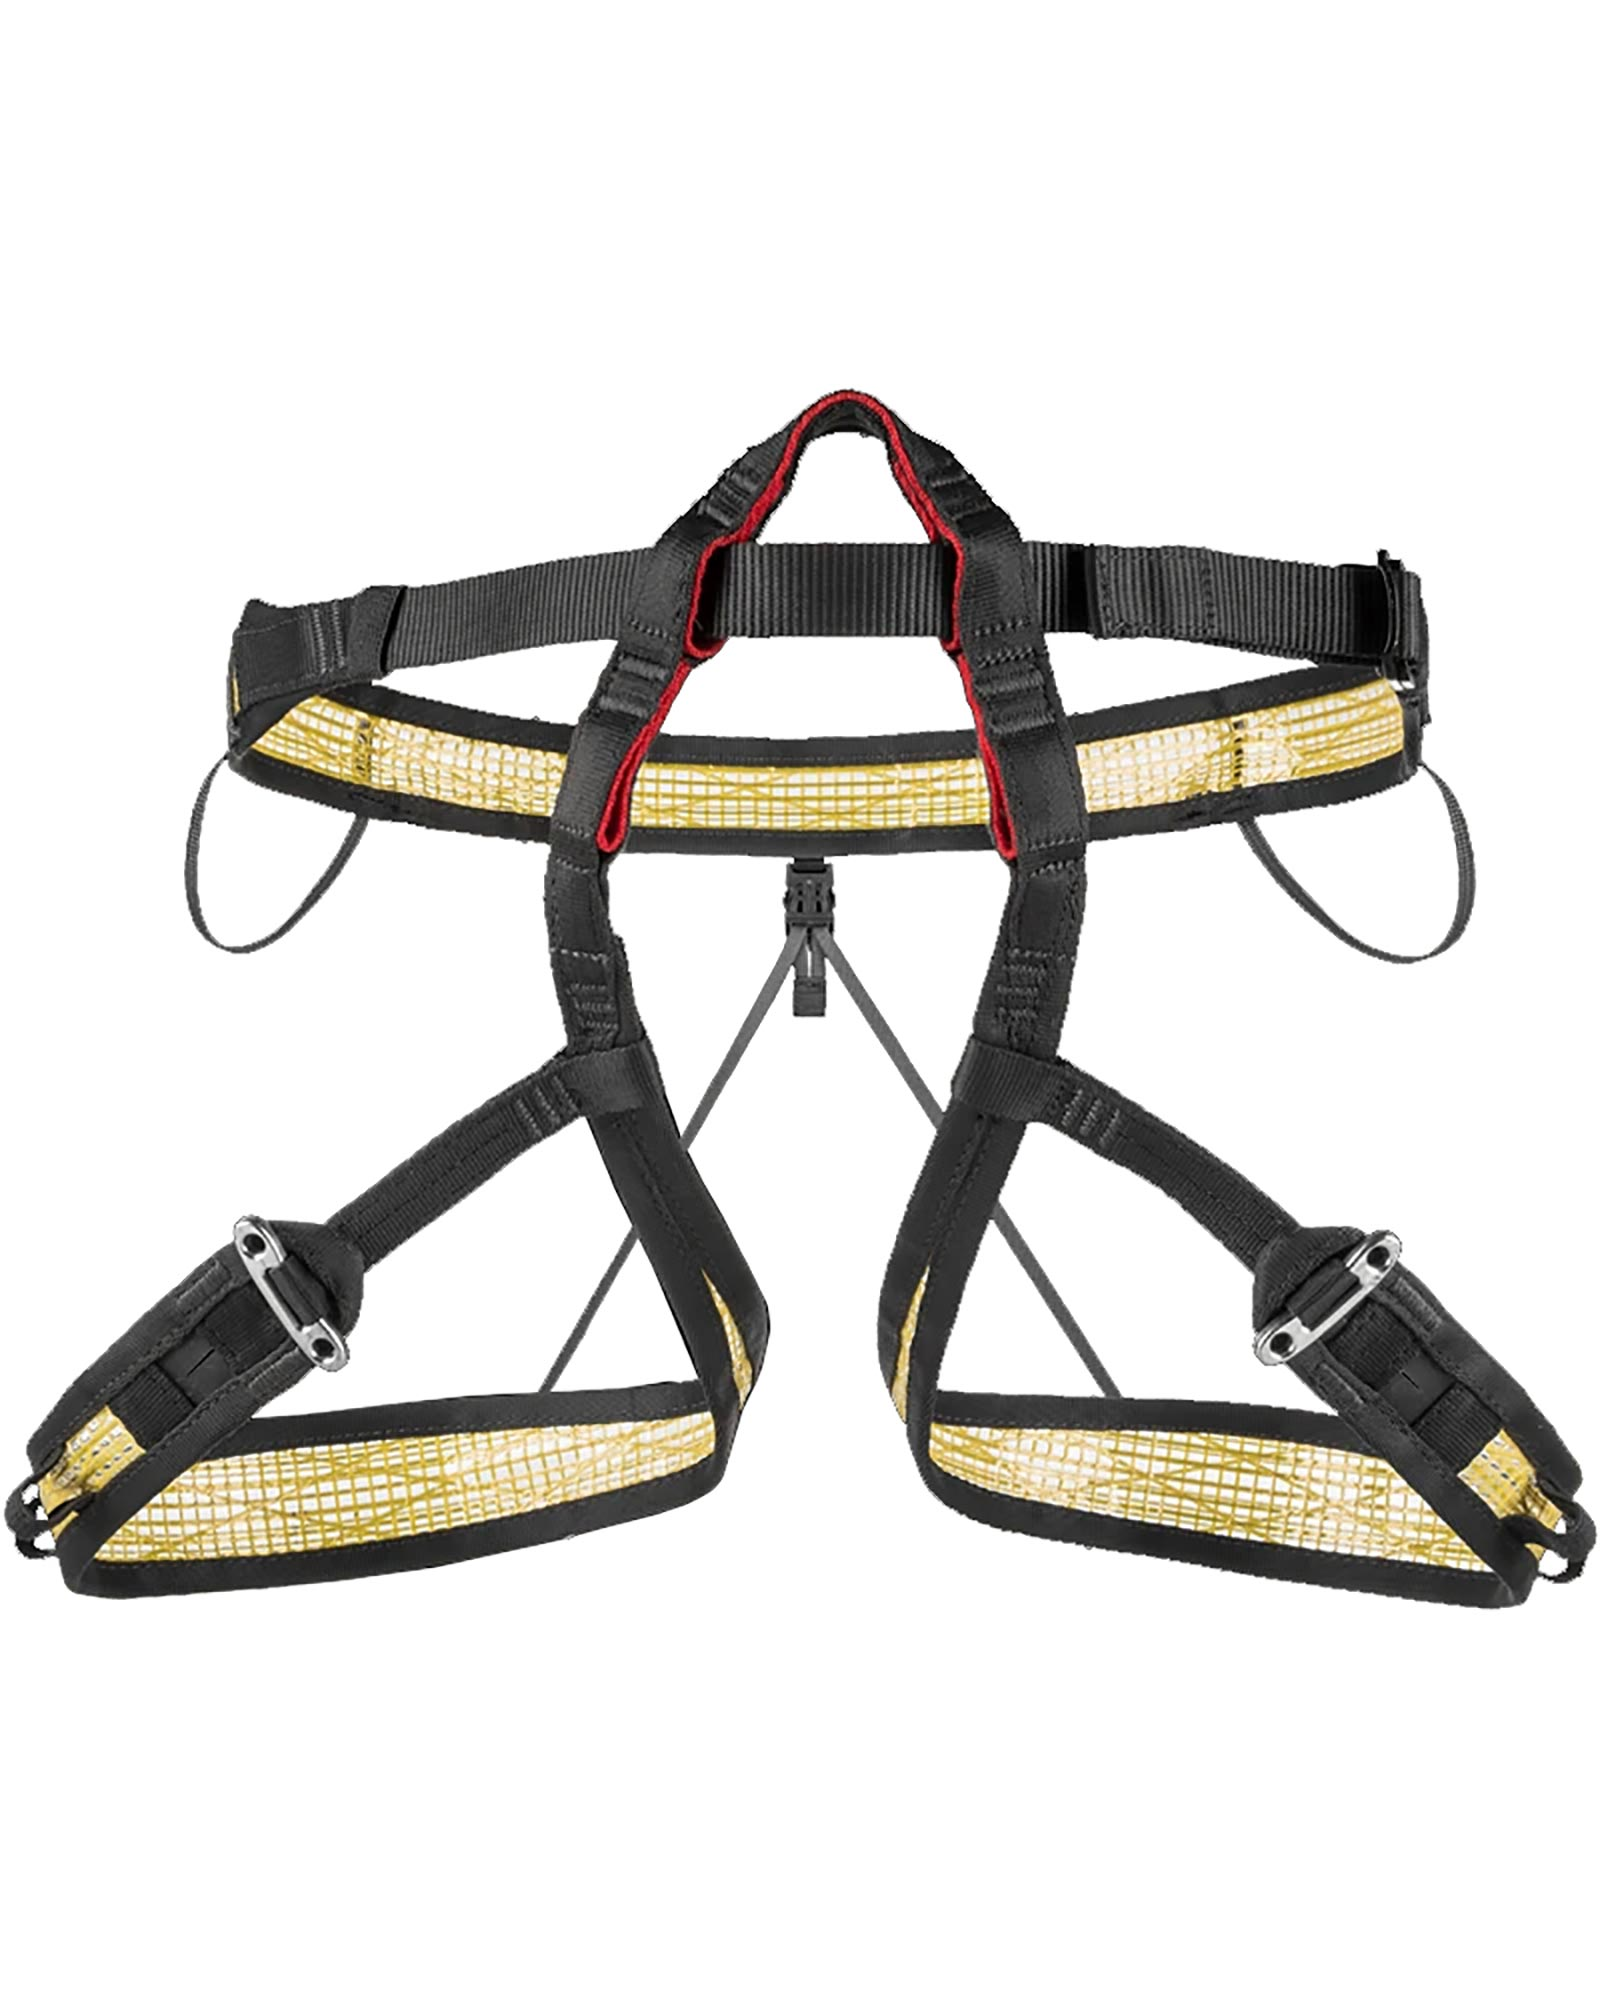 Grivel Mistral Climbing Harness 0